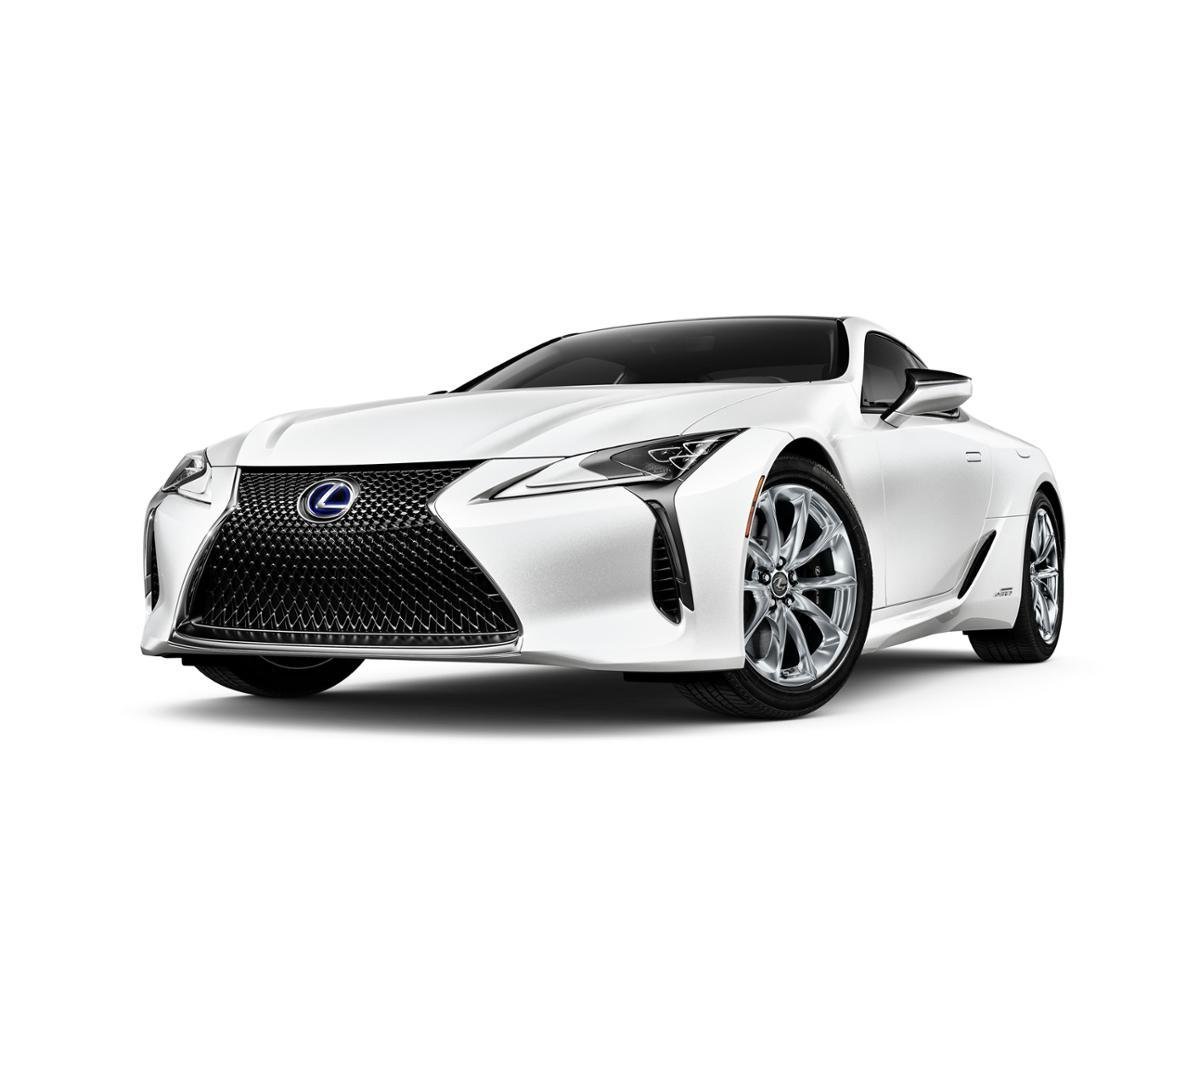 2018 Lexus LC 500h Vehicle Photo in Mission Viejo, CA 92692